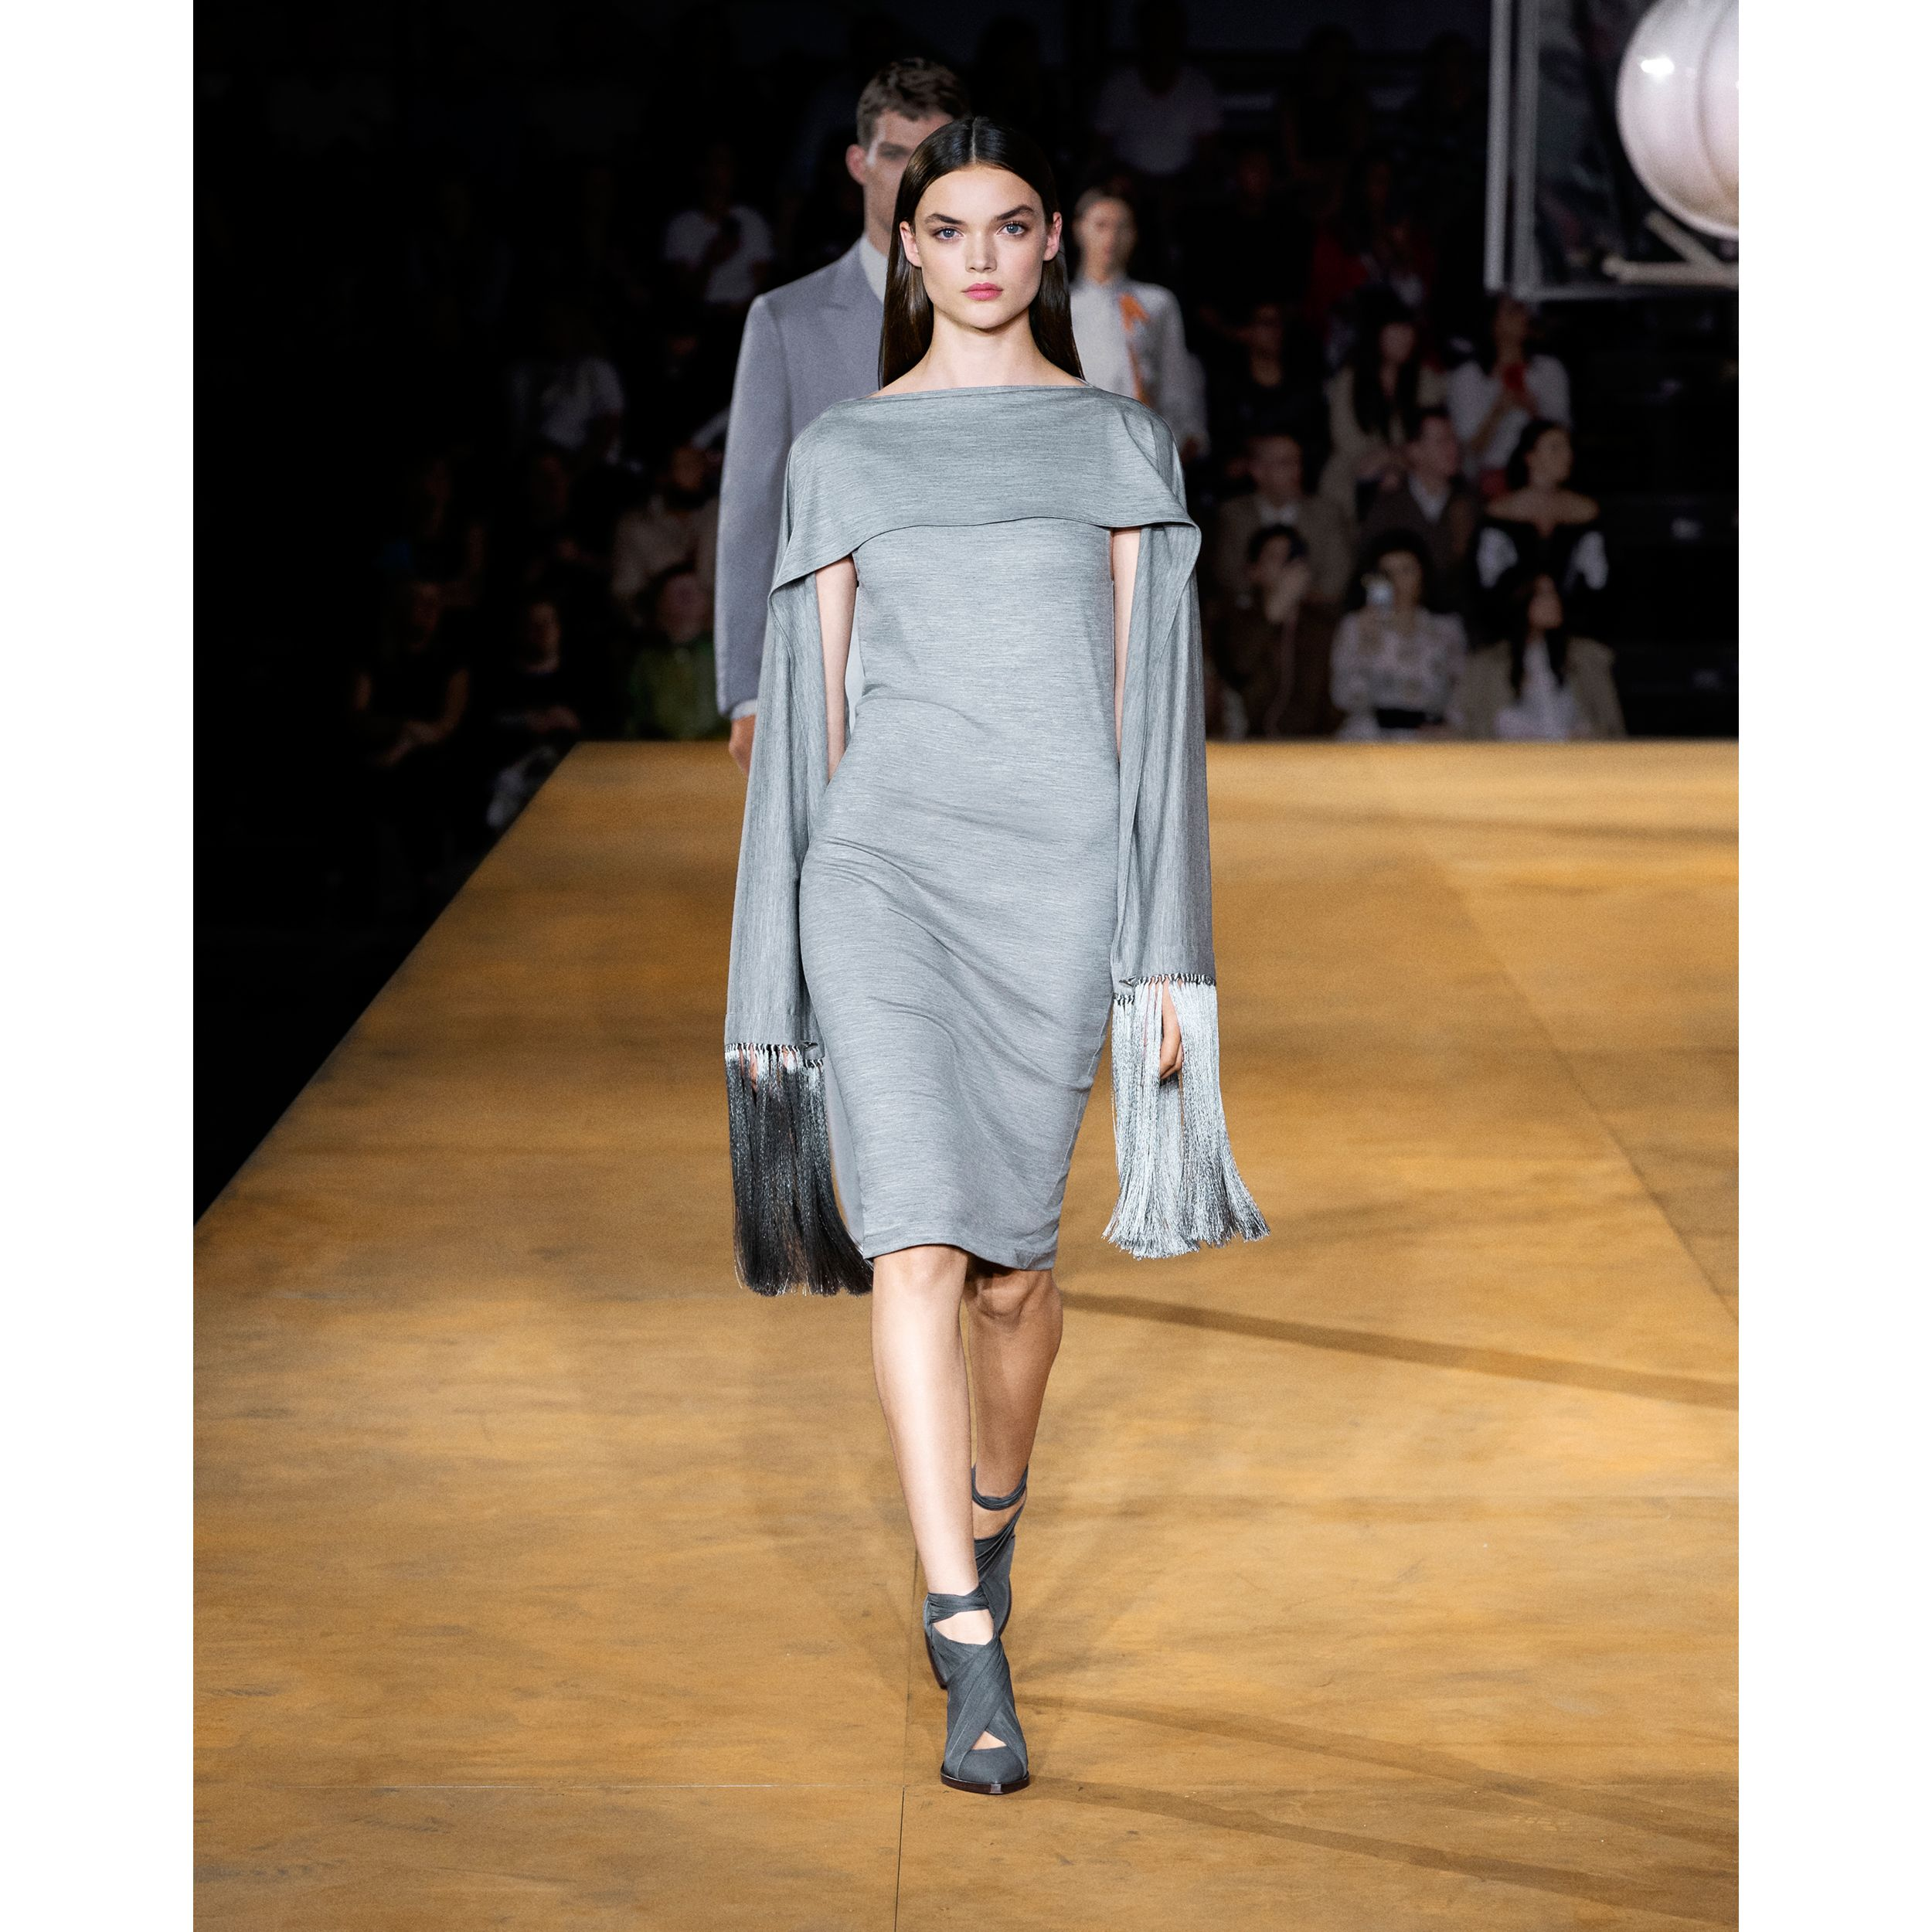 Merino Wool Sleeveless Dress with Fringed Capelet in Cloud Grey - Women | Burberry Hong Kong S.A.R. - 3